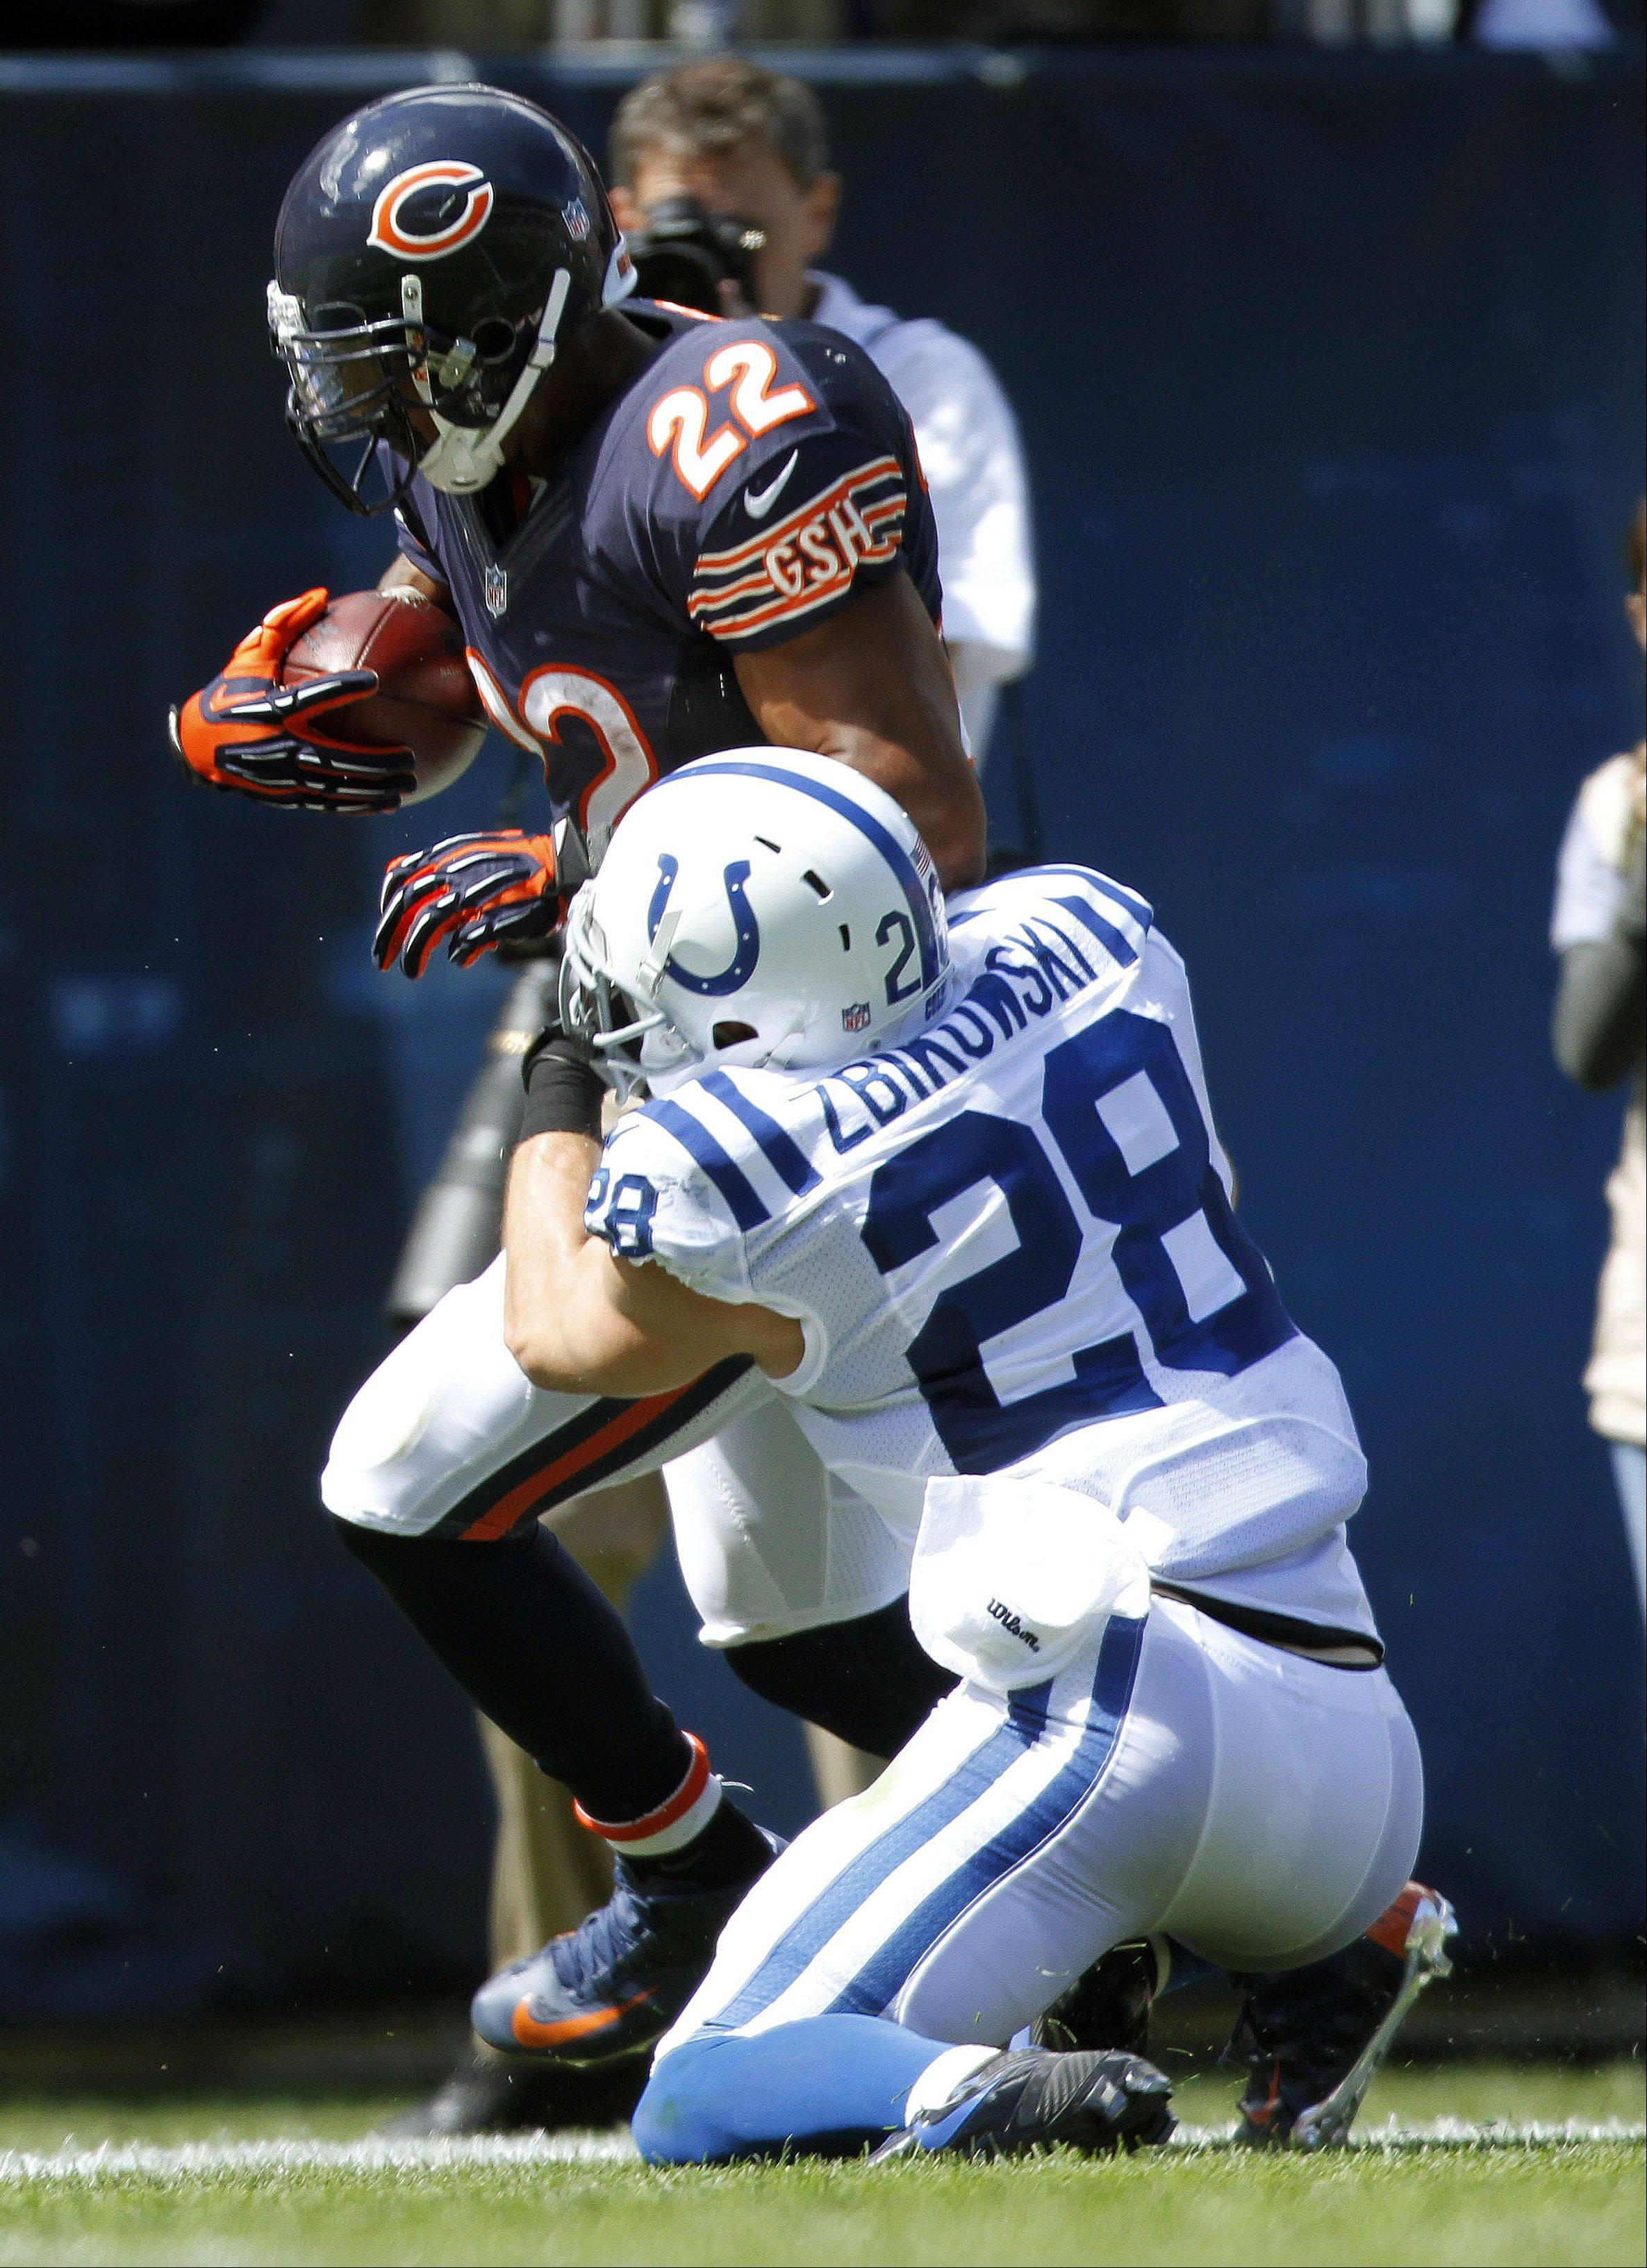 Bears running back Matt Forte tries to break a tackle by Indianapolis Colts defensive back Tom Zbikowski during the Bears 2012 season opener at Soldier Field in Chicago. Zbikowski, a former Notre Dame star, signed with the Bears this season.